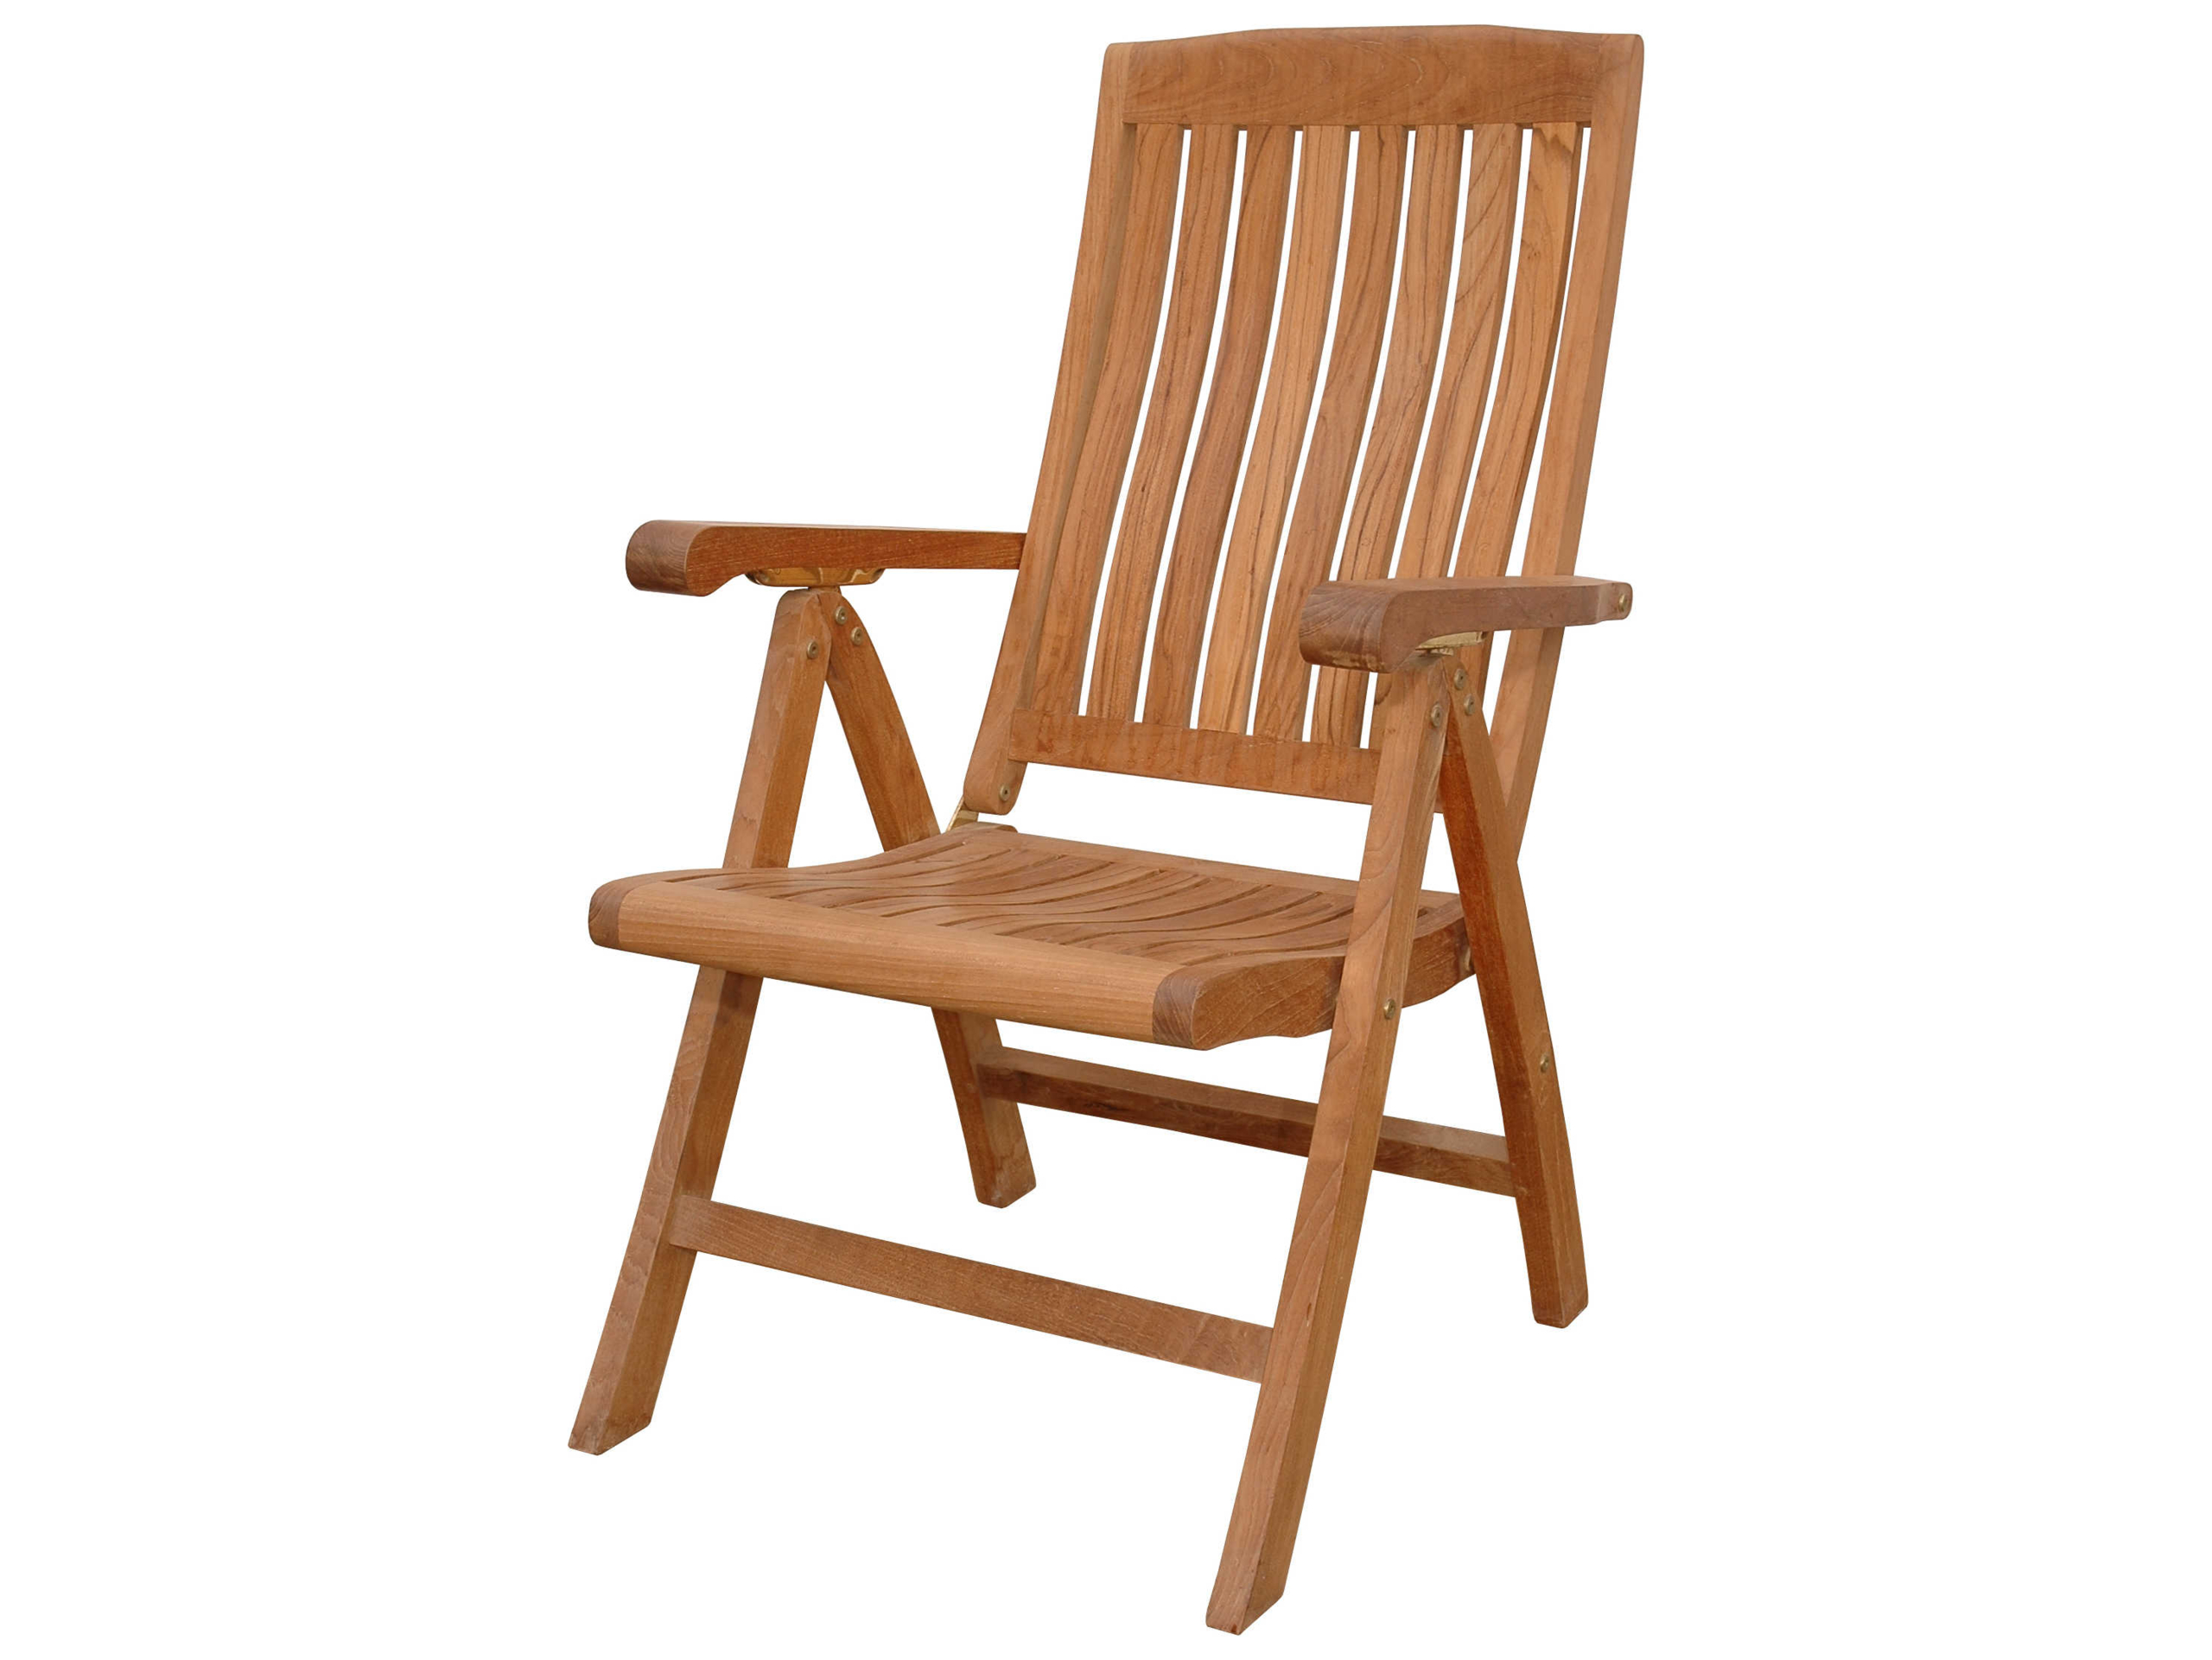 teak folding chair canvas chairs outdoor furniture arm ideas on foter katana 5 position recliner armchair by anderson mpn chr 120